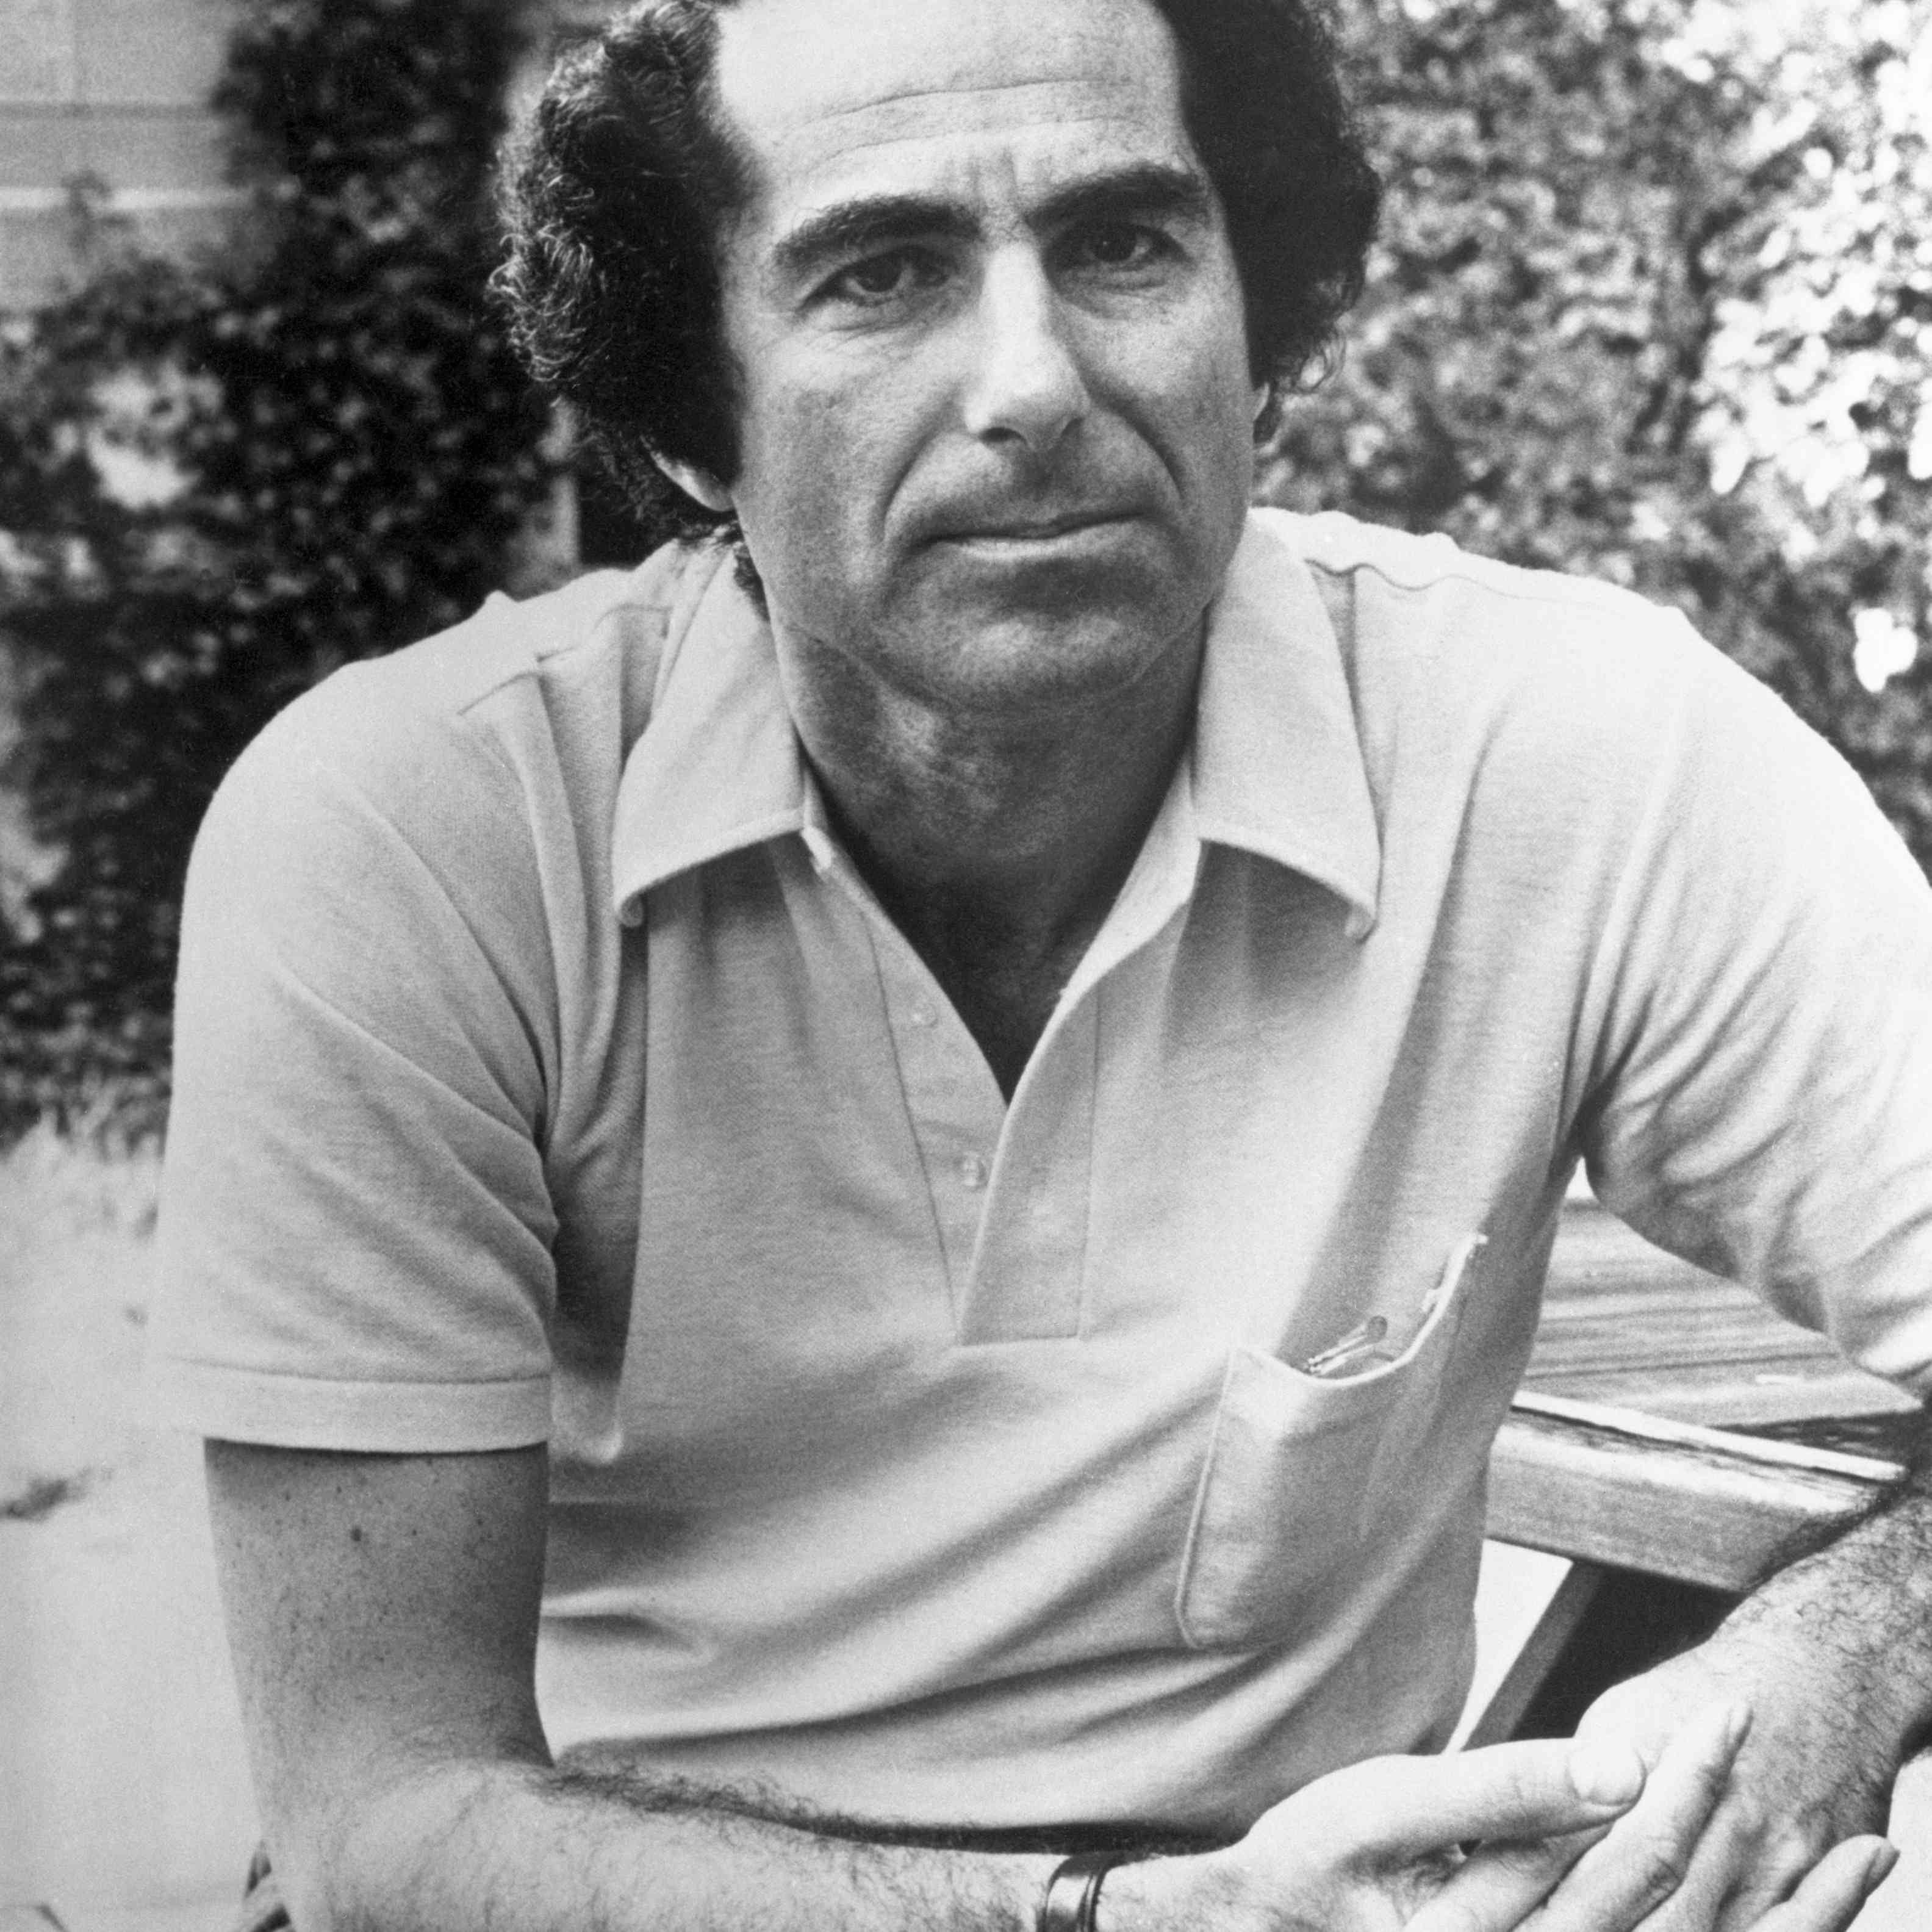 Author Philip Roth in the Park